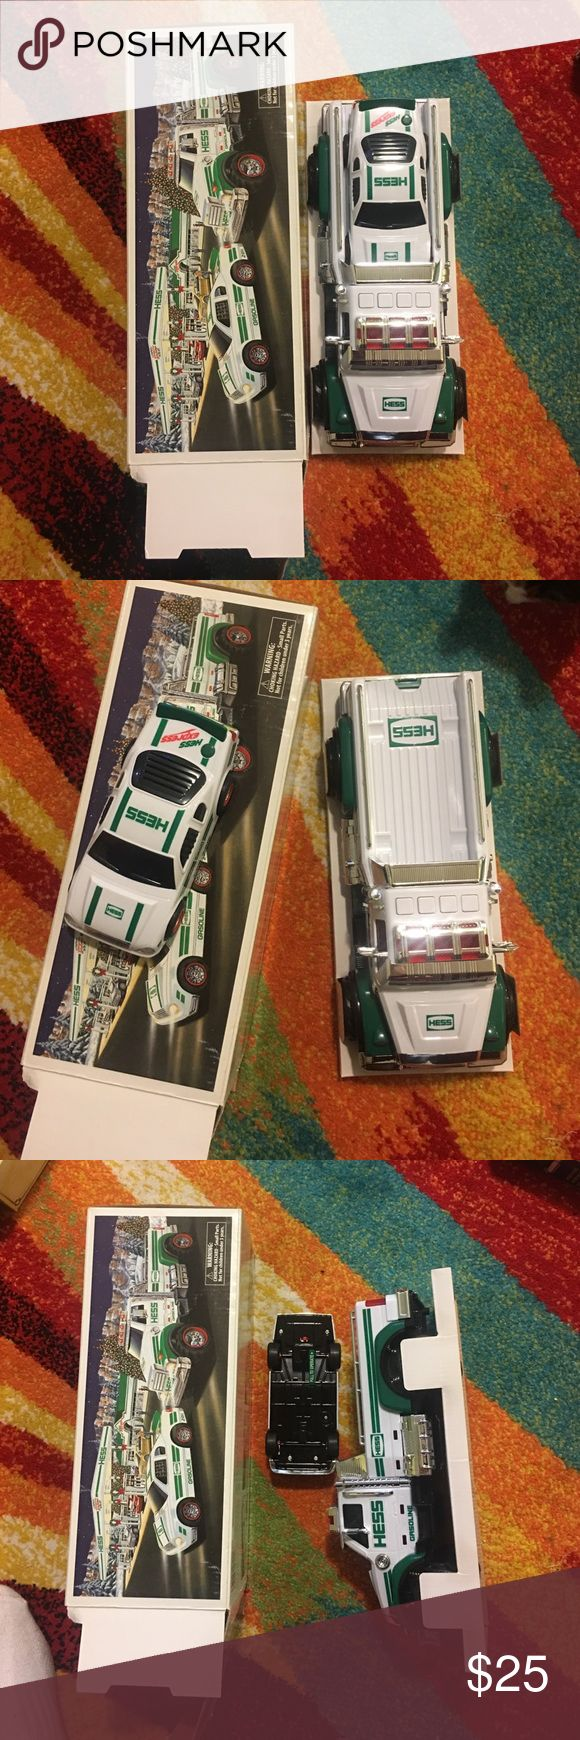 Hess Toy truck and race car 2011 2011 Hess toy truck with race car brand new Other